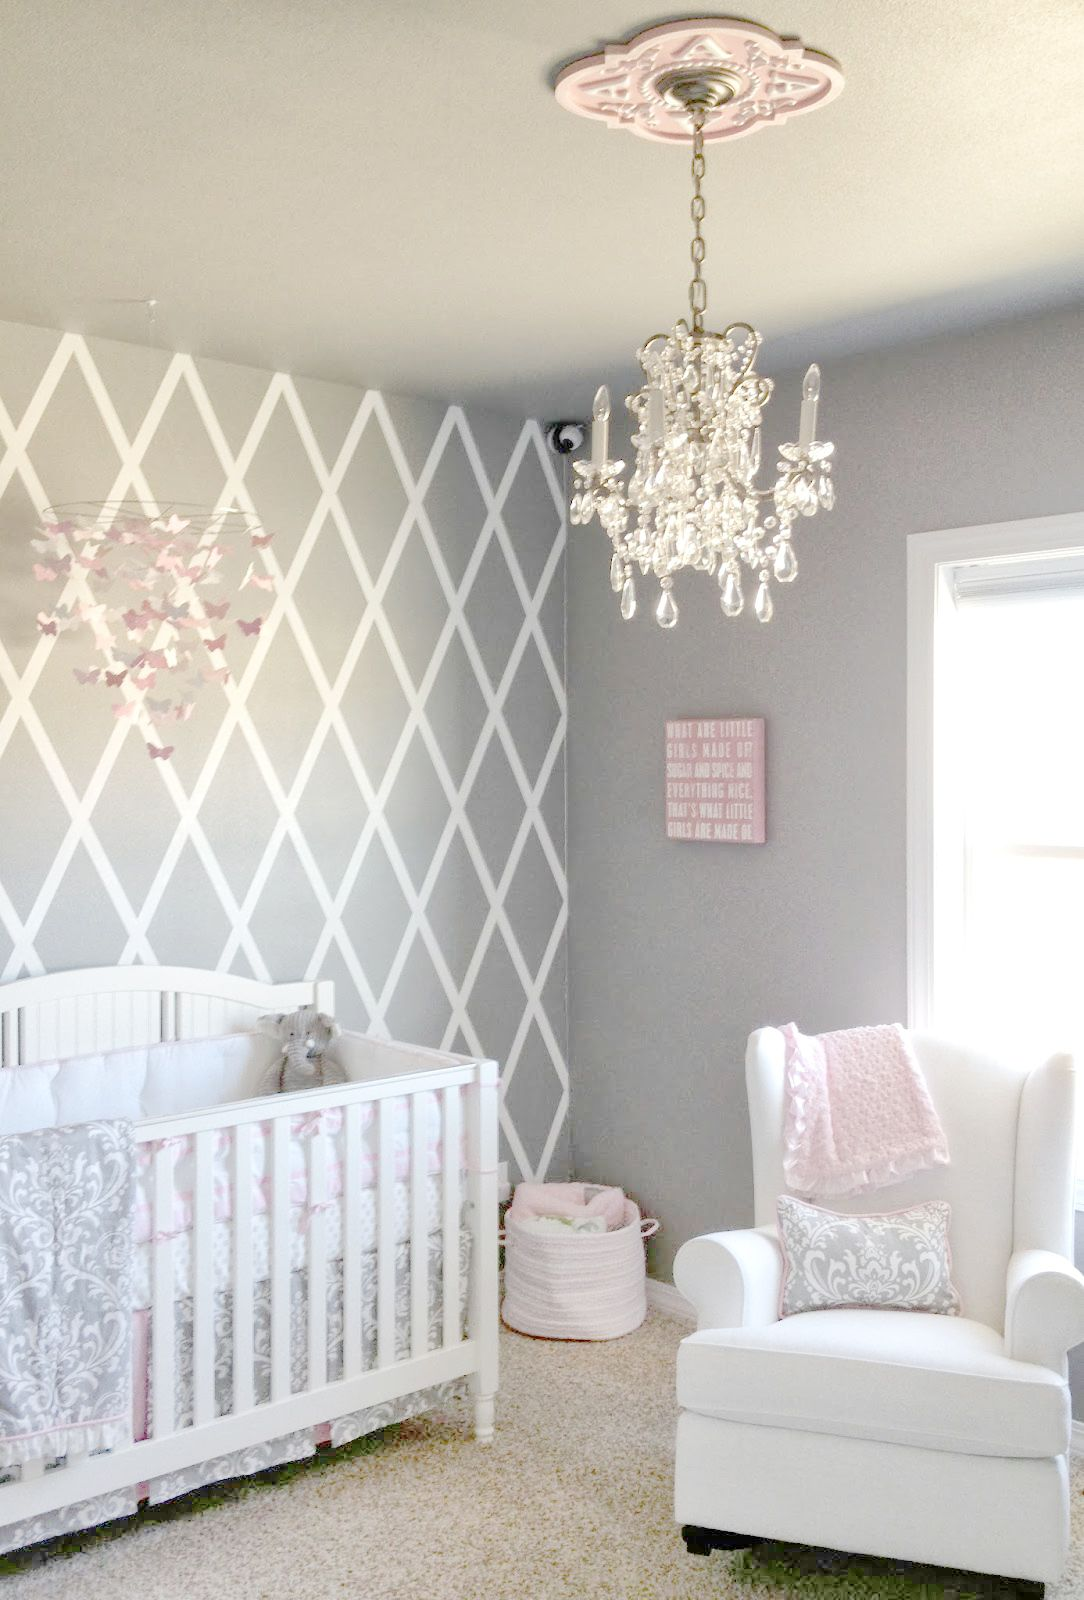 Good Beautiful Gray And Pink Nursery Features Our Stella Gray Baby Bedding  Collection! So Pretty For A Baby Girlu0027s Nursery!